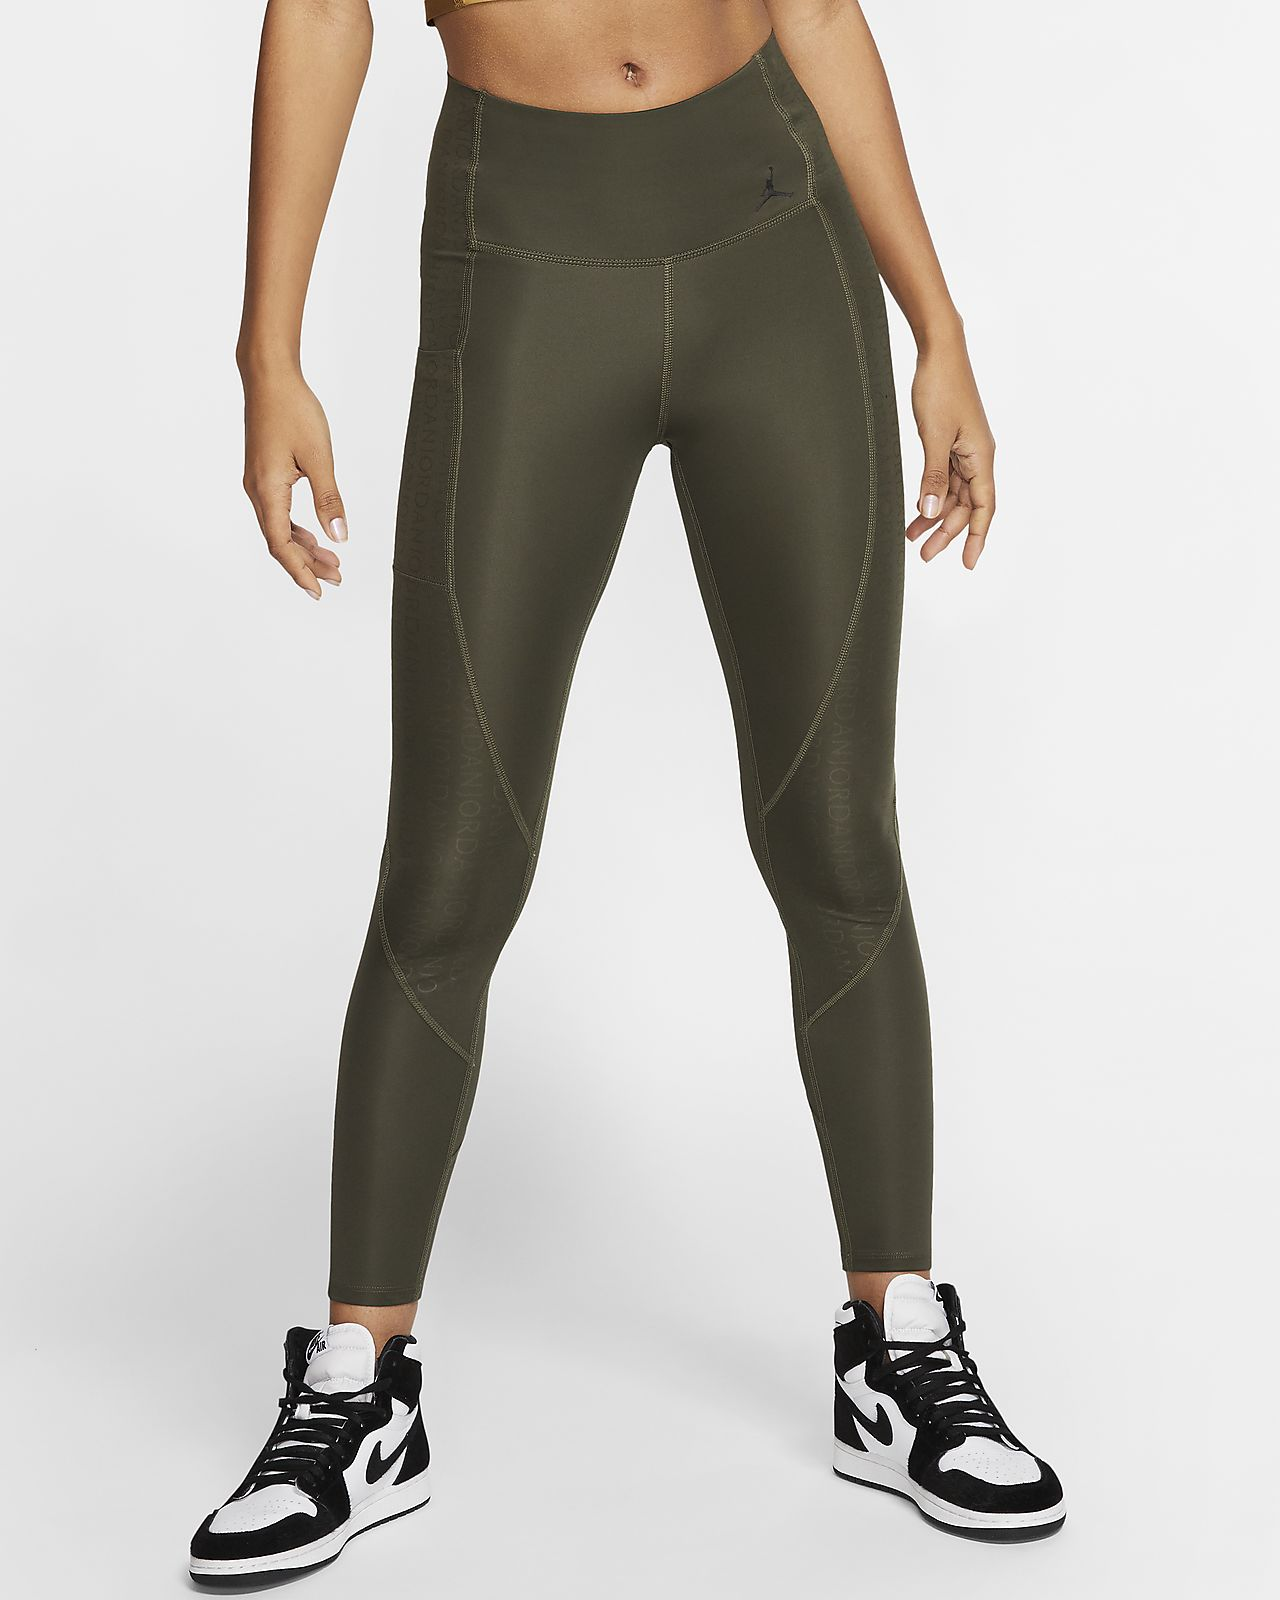 Jordan Women's Leggings